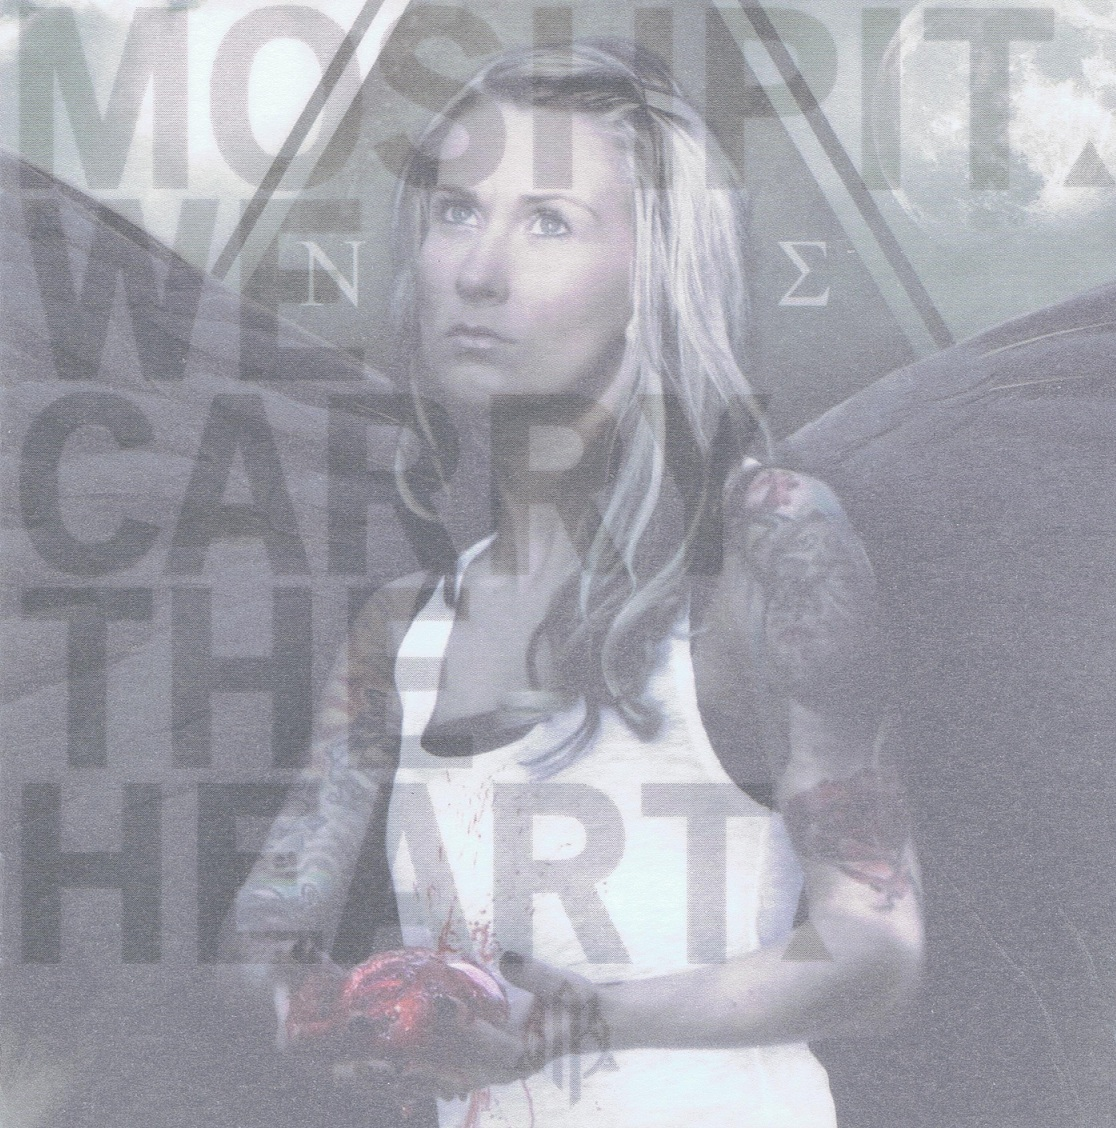 News Added May 03, 2012 Arist: Moshpit Label: OPOS Records Genre: Melodic Metalcore Country: Germany Submitted By Alex Track list: Added May 03, 2012 1. Prolouge, 2. We Carry The Heart, 3. Victory Or Death, 4. Beneath The Surface, 5. 101, 6. Spirit Of Youth, 7. Interlude (Bond Of Steel), 8. Close The Hive, 9. […]